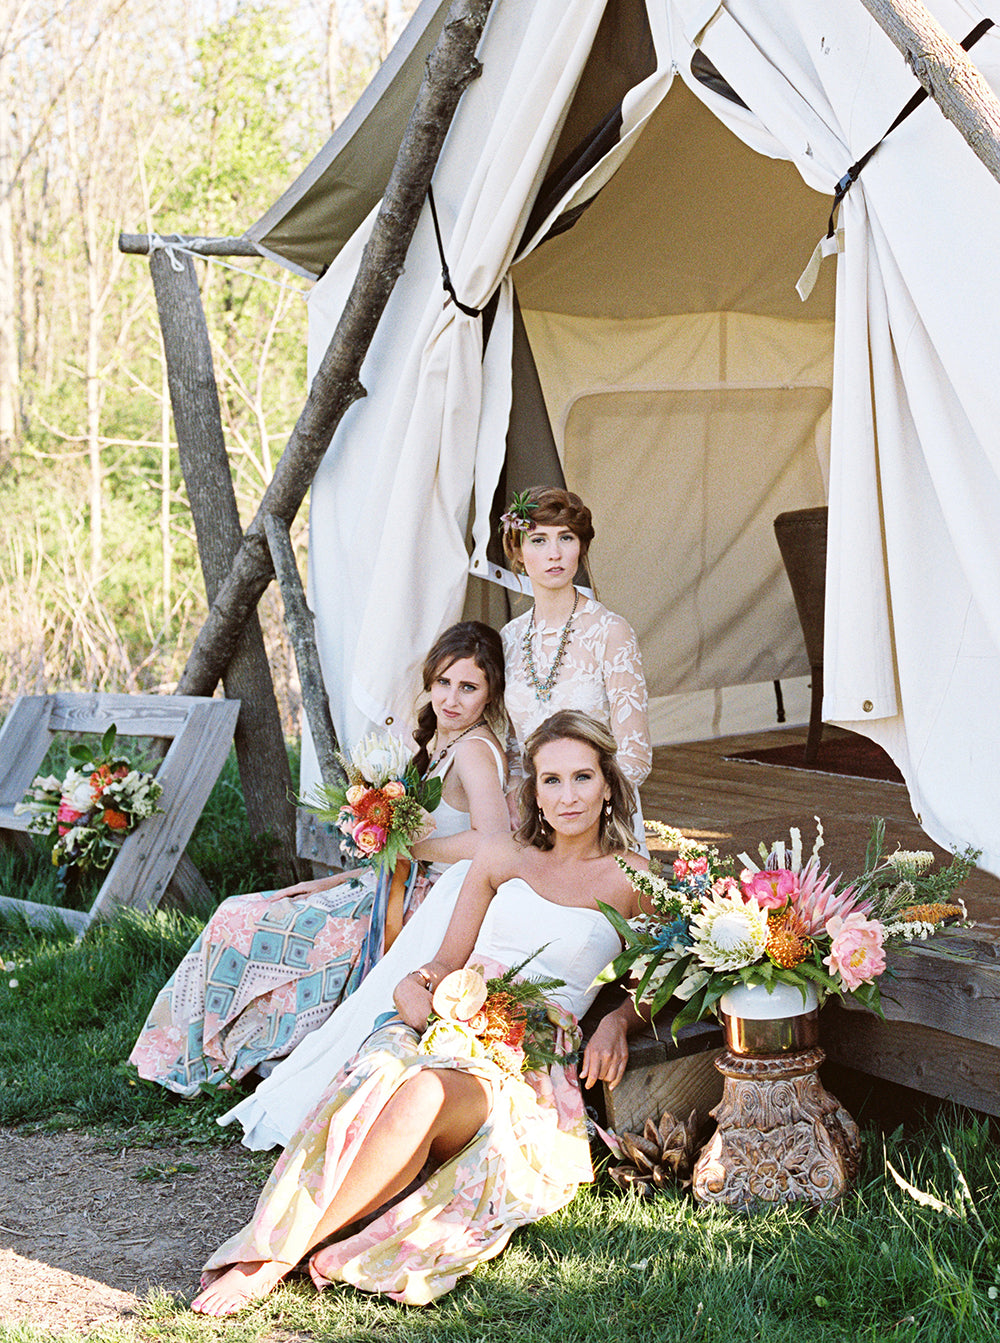 firelight-camps-wedding-inspiration-stacy-k-floral-15